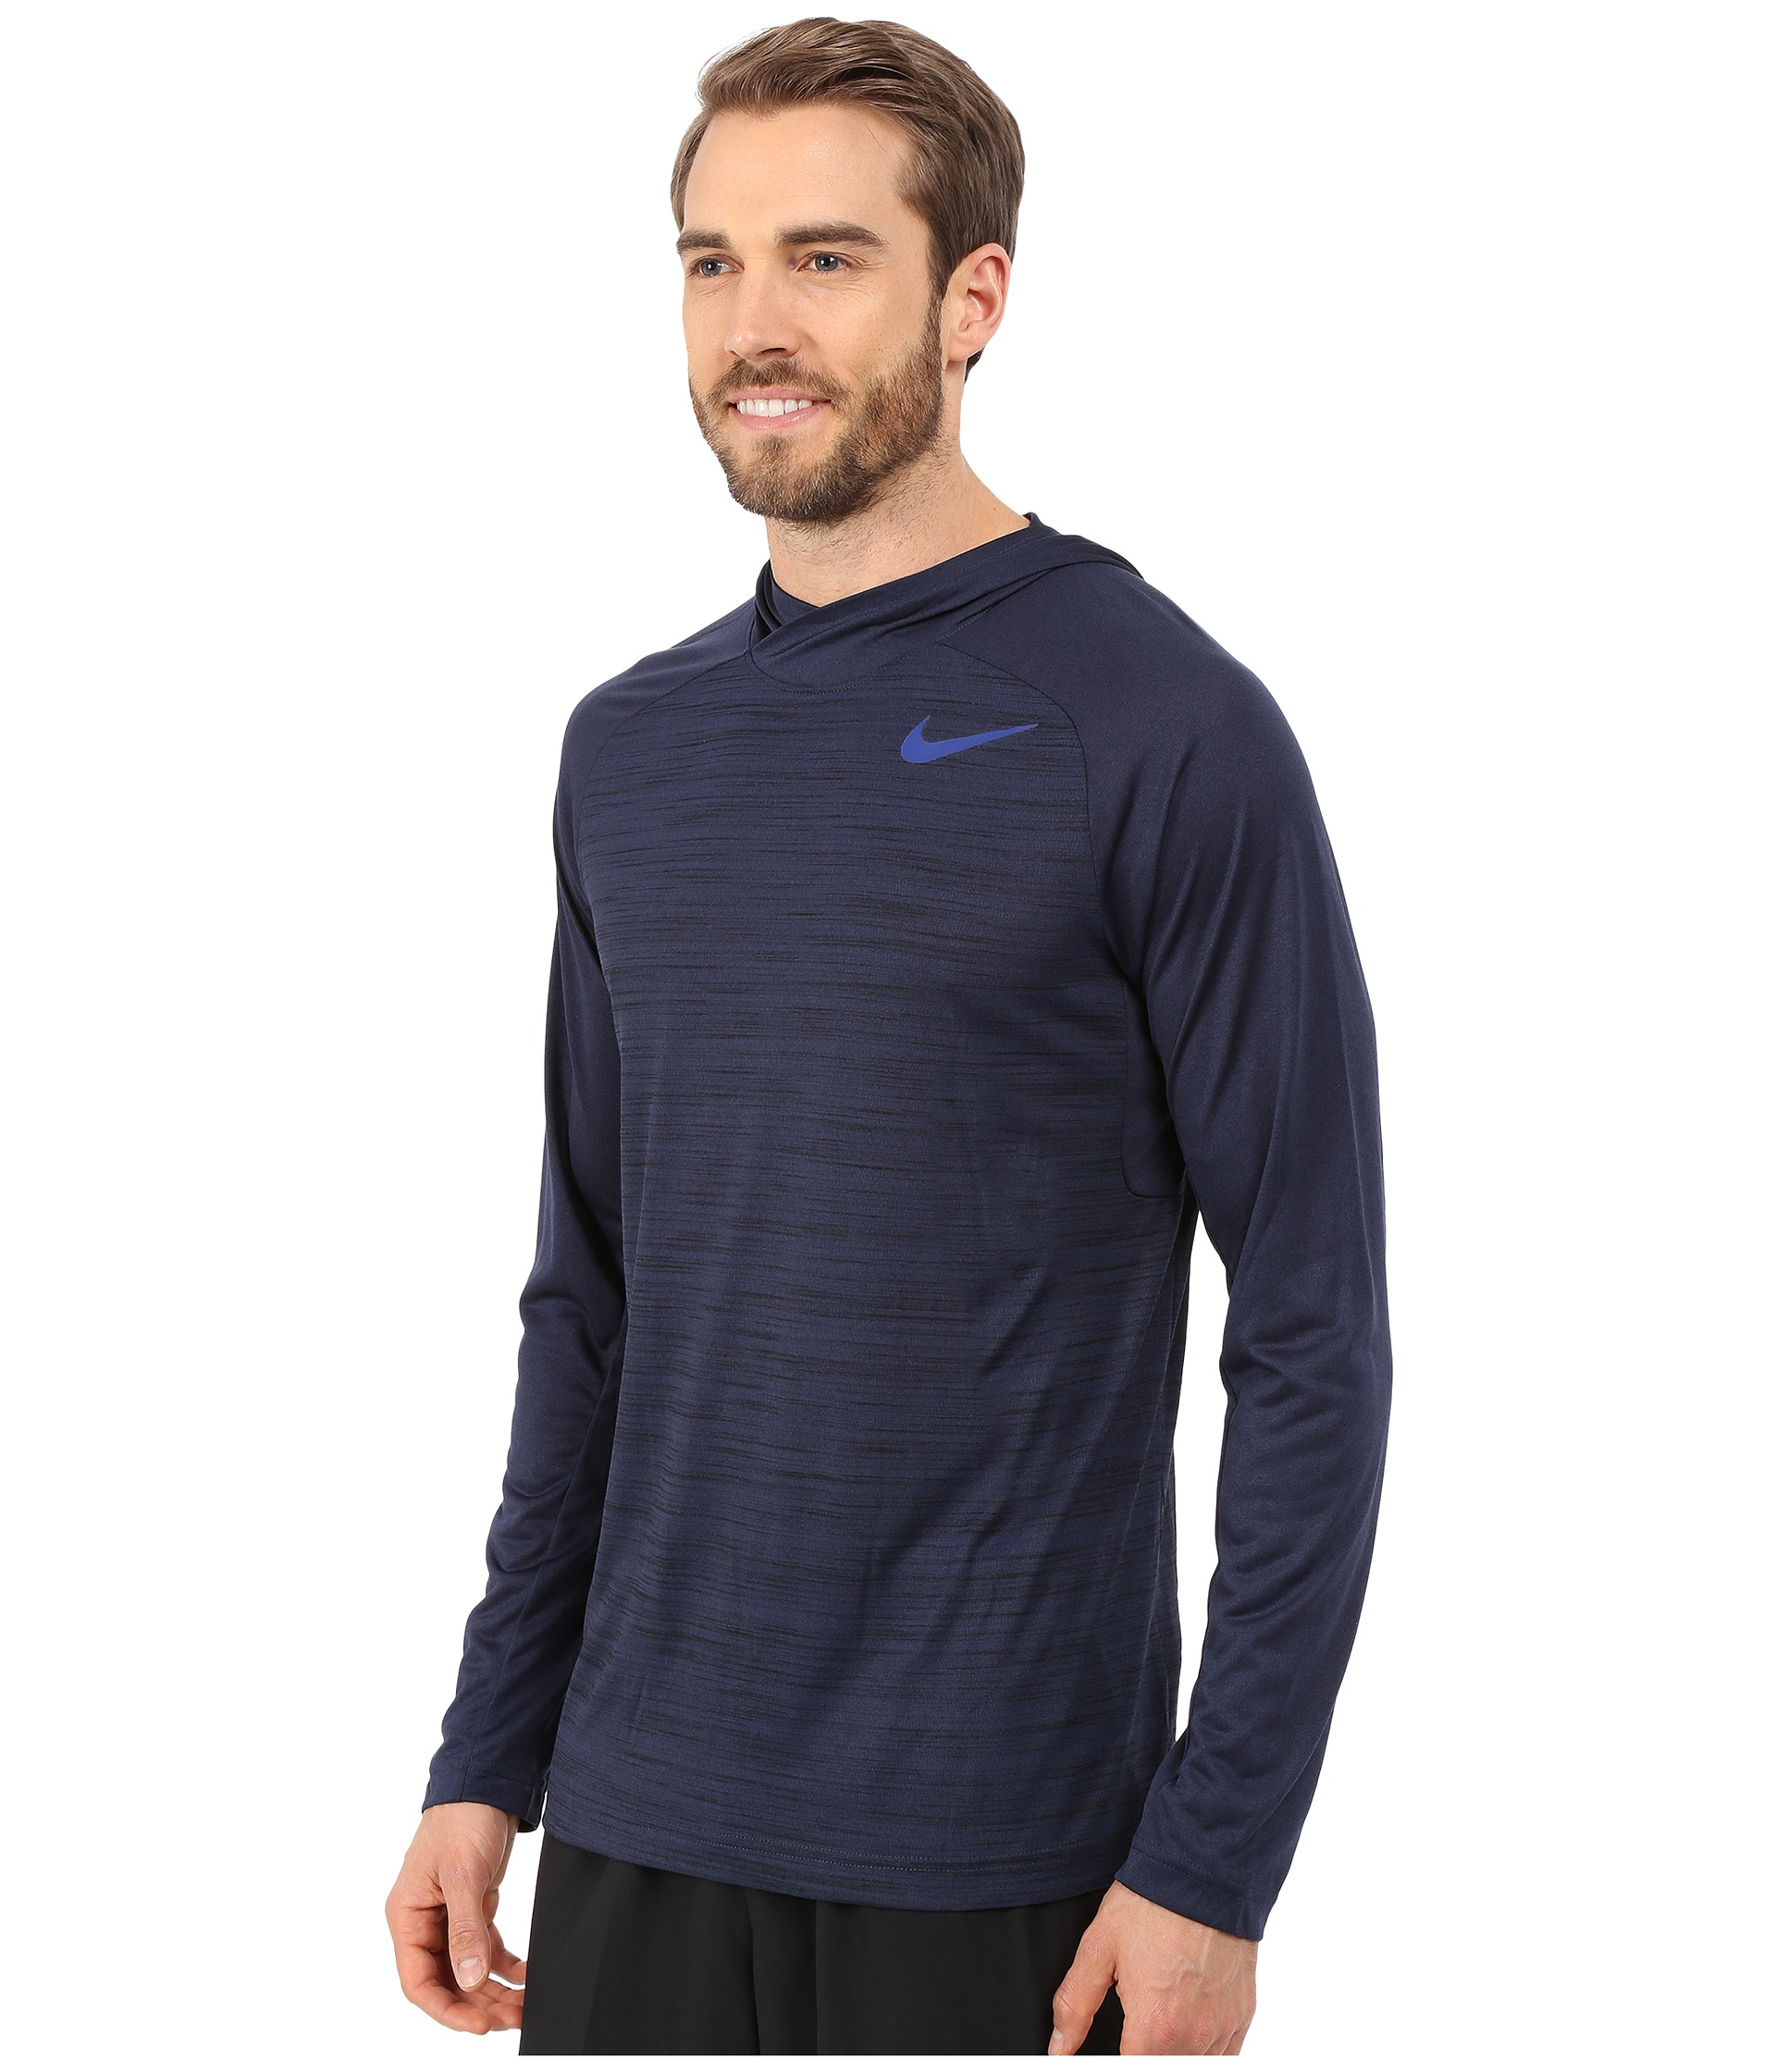 a70851e4 Nike Mens Dri Fit Touch Hooded Long Sleeve Shirt – EDGE Engineering ...